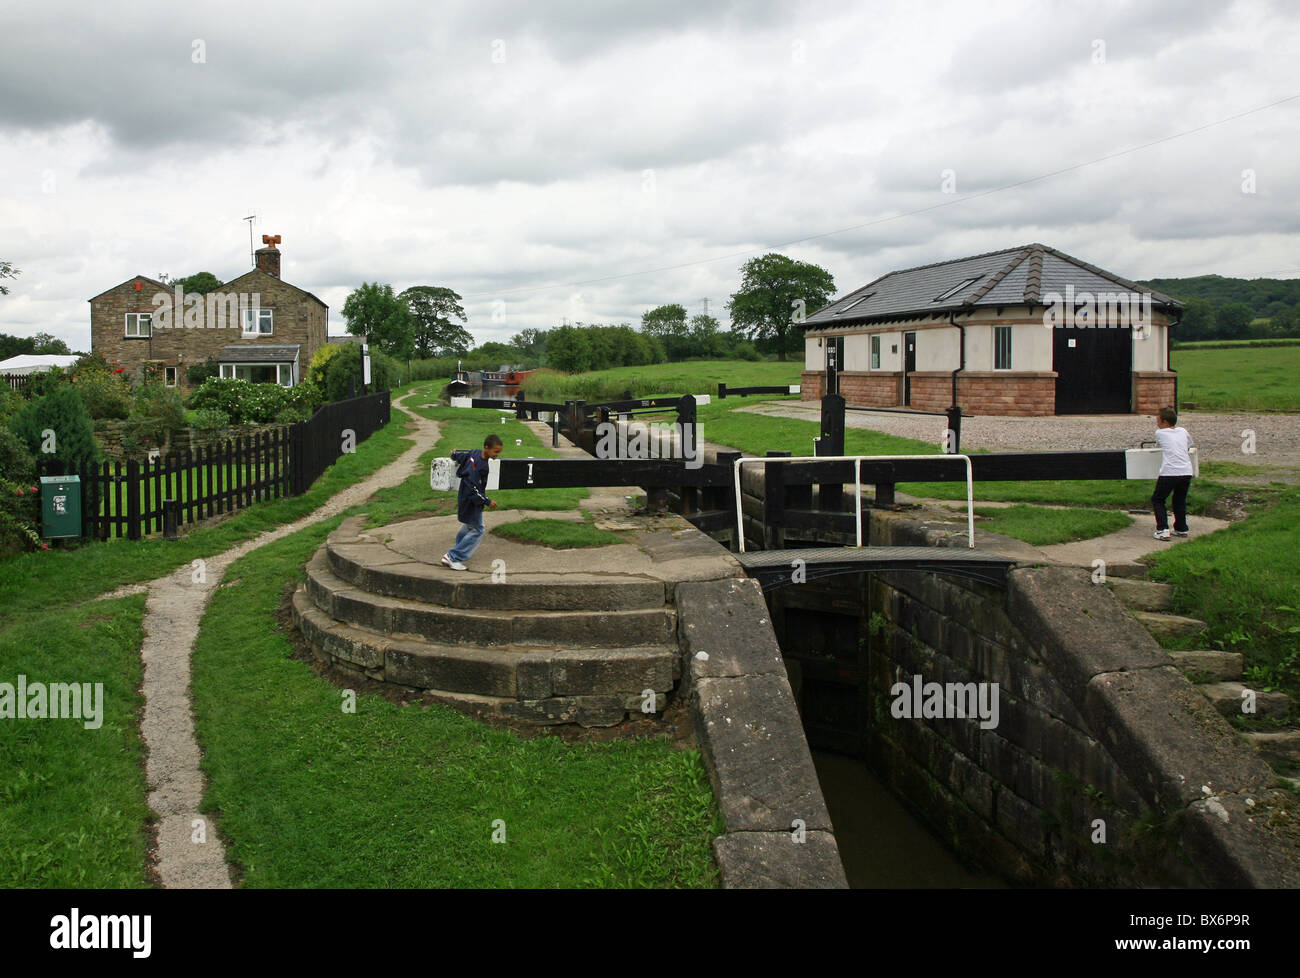 2 young boys opening the lock gates at Bosley Locks on the Macclesfield Canal - Stock Image